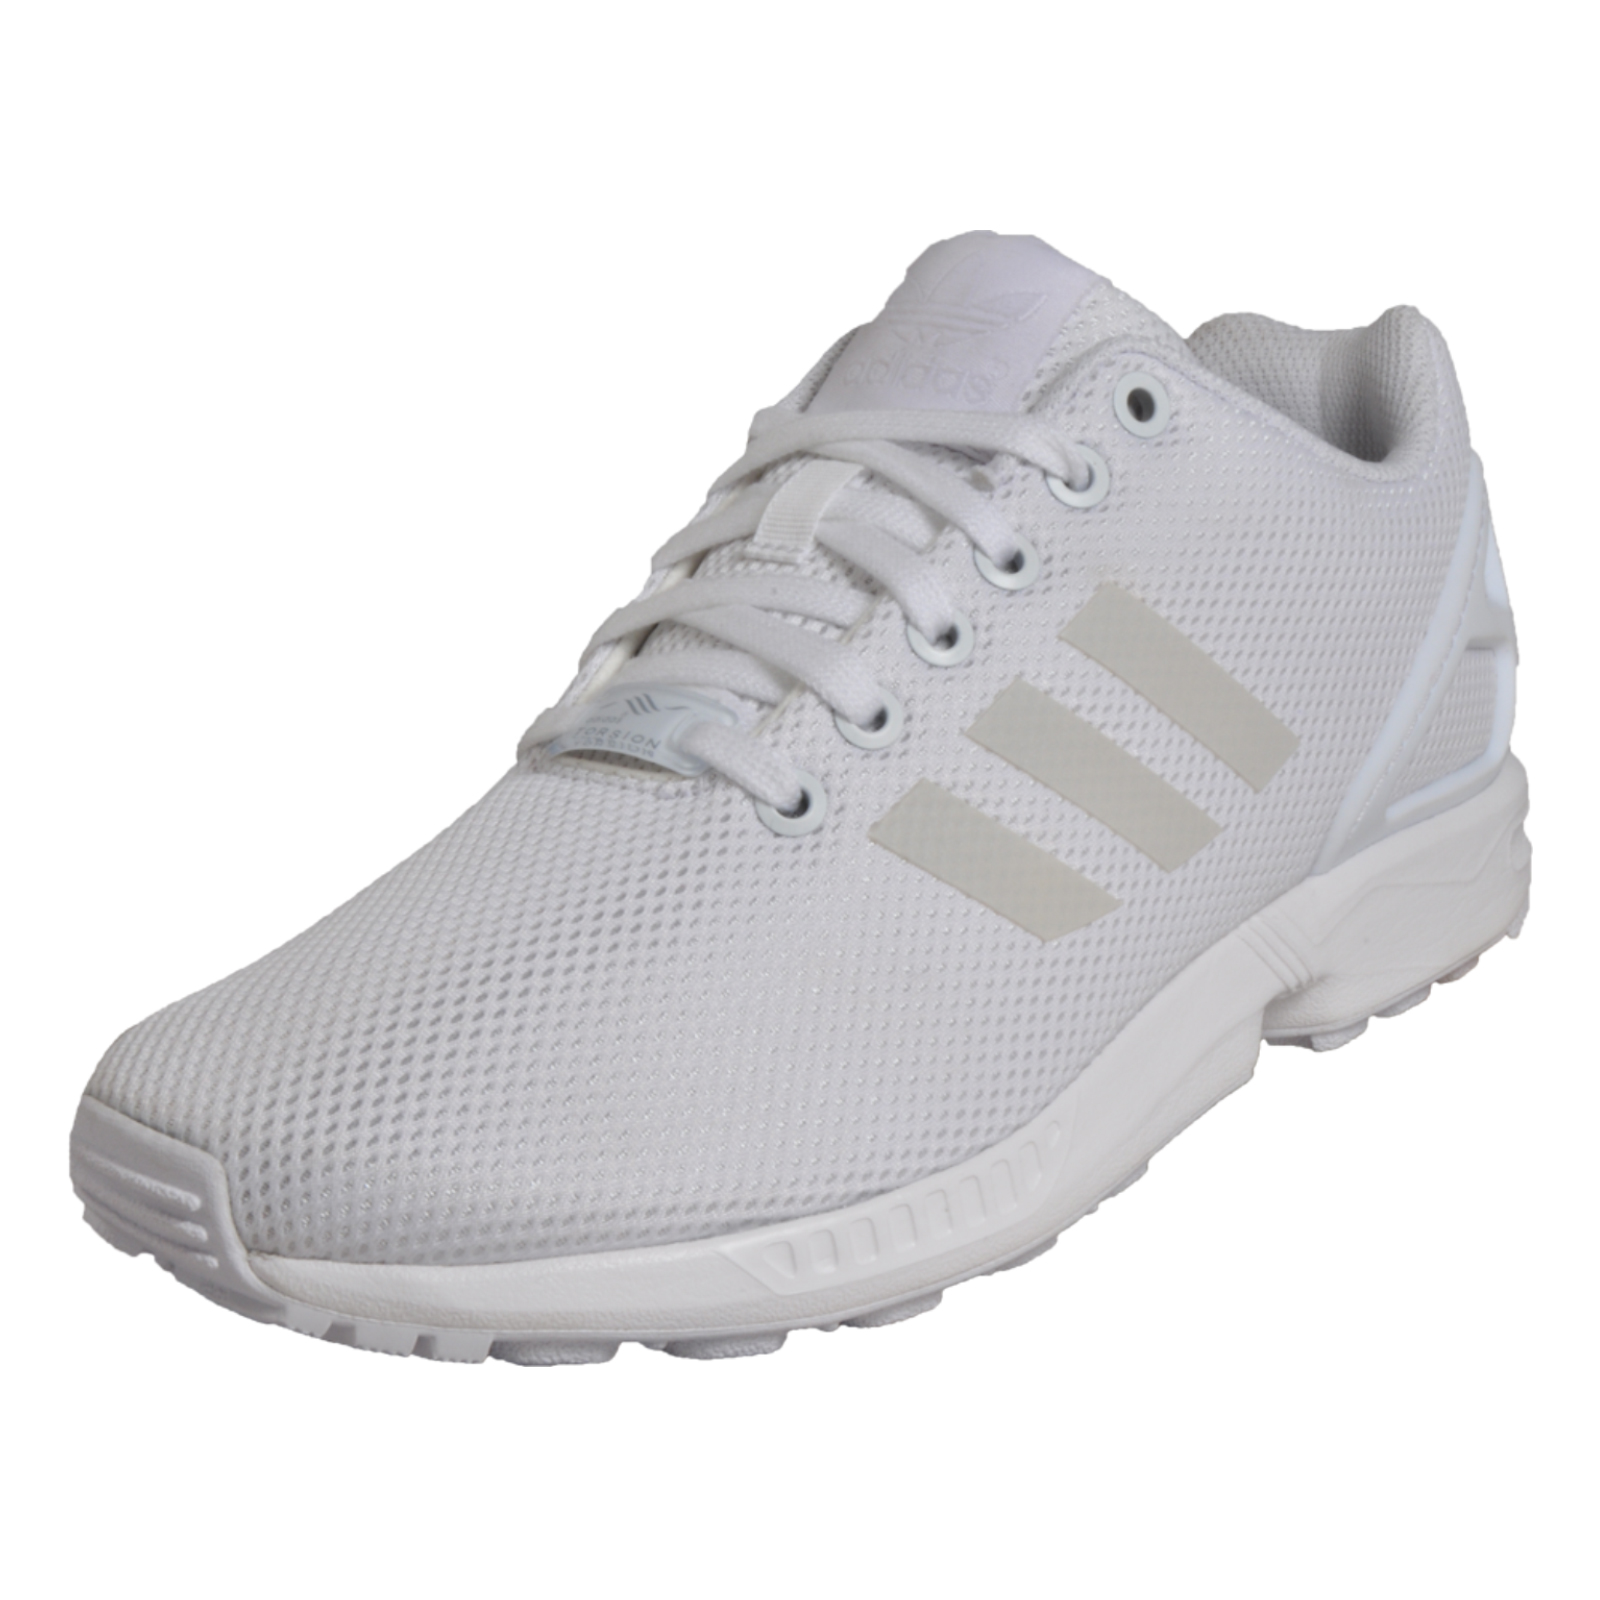 watch 7e7ab f1b74 Details about Adidas Originals ZX Flux Uni Classic Casual Retro Trainers  White UK 4 Only